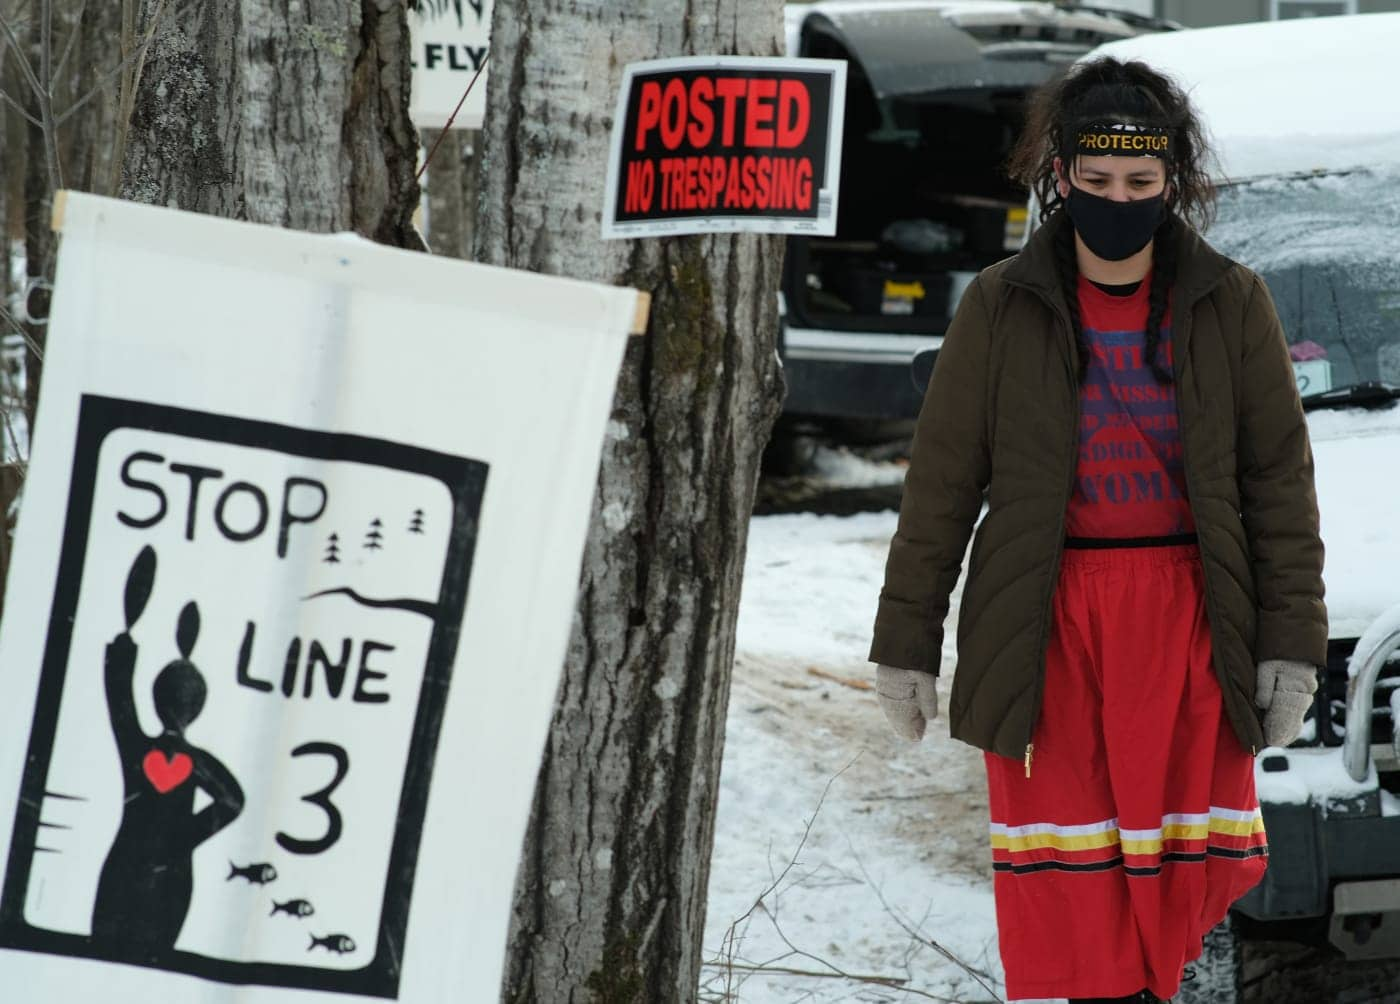 """Taysha Martineau walking down a snowy street with a """"stop line 3"""" sign in the foreground"""